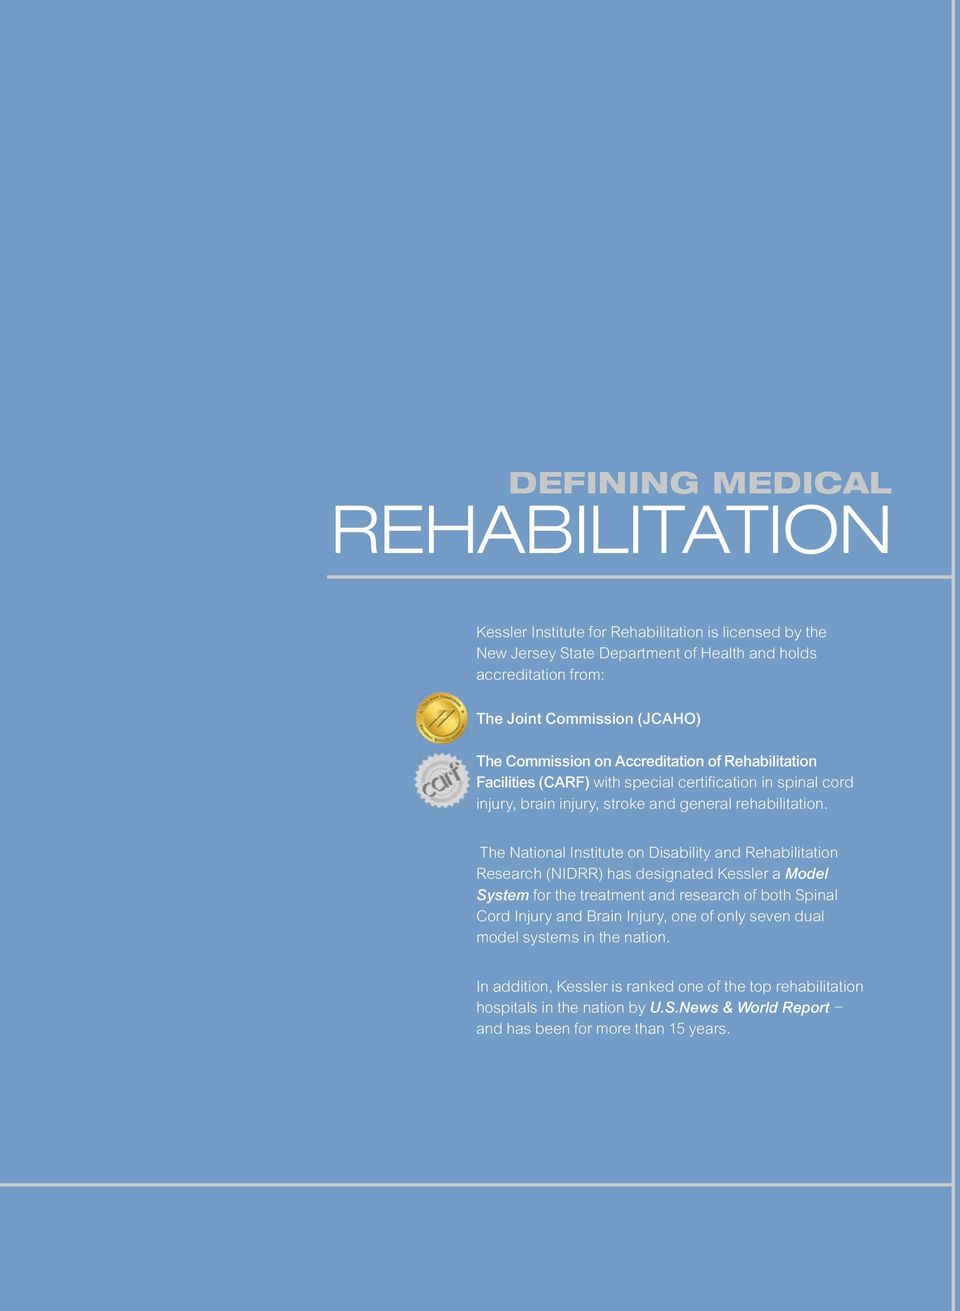 The National Institute on Disability and Rehabilitation Research (NIDRR) has designated Kessler a Model System for the treatment and research of both Spinal Cord Injury and Brain